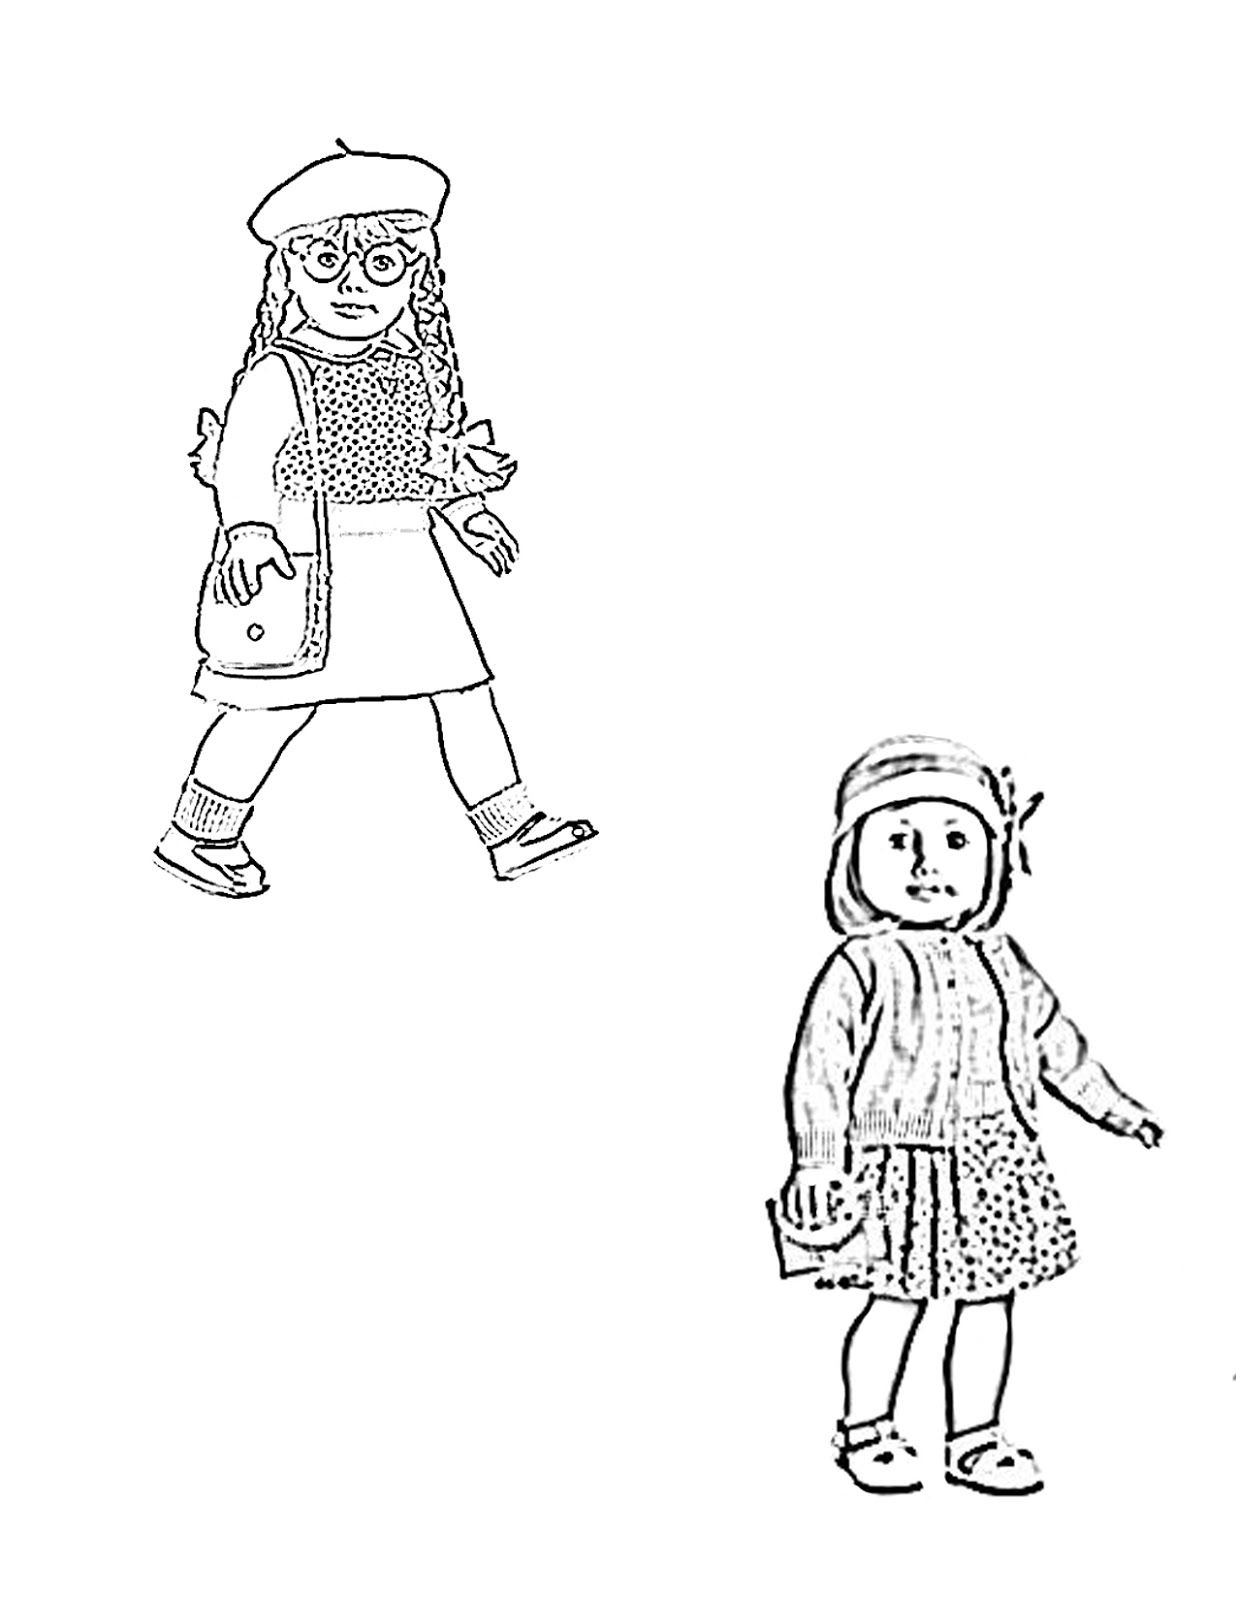 american girl doll coloring pages to print american girl doll coloring pages to download and print coloring doll pages american print to girl